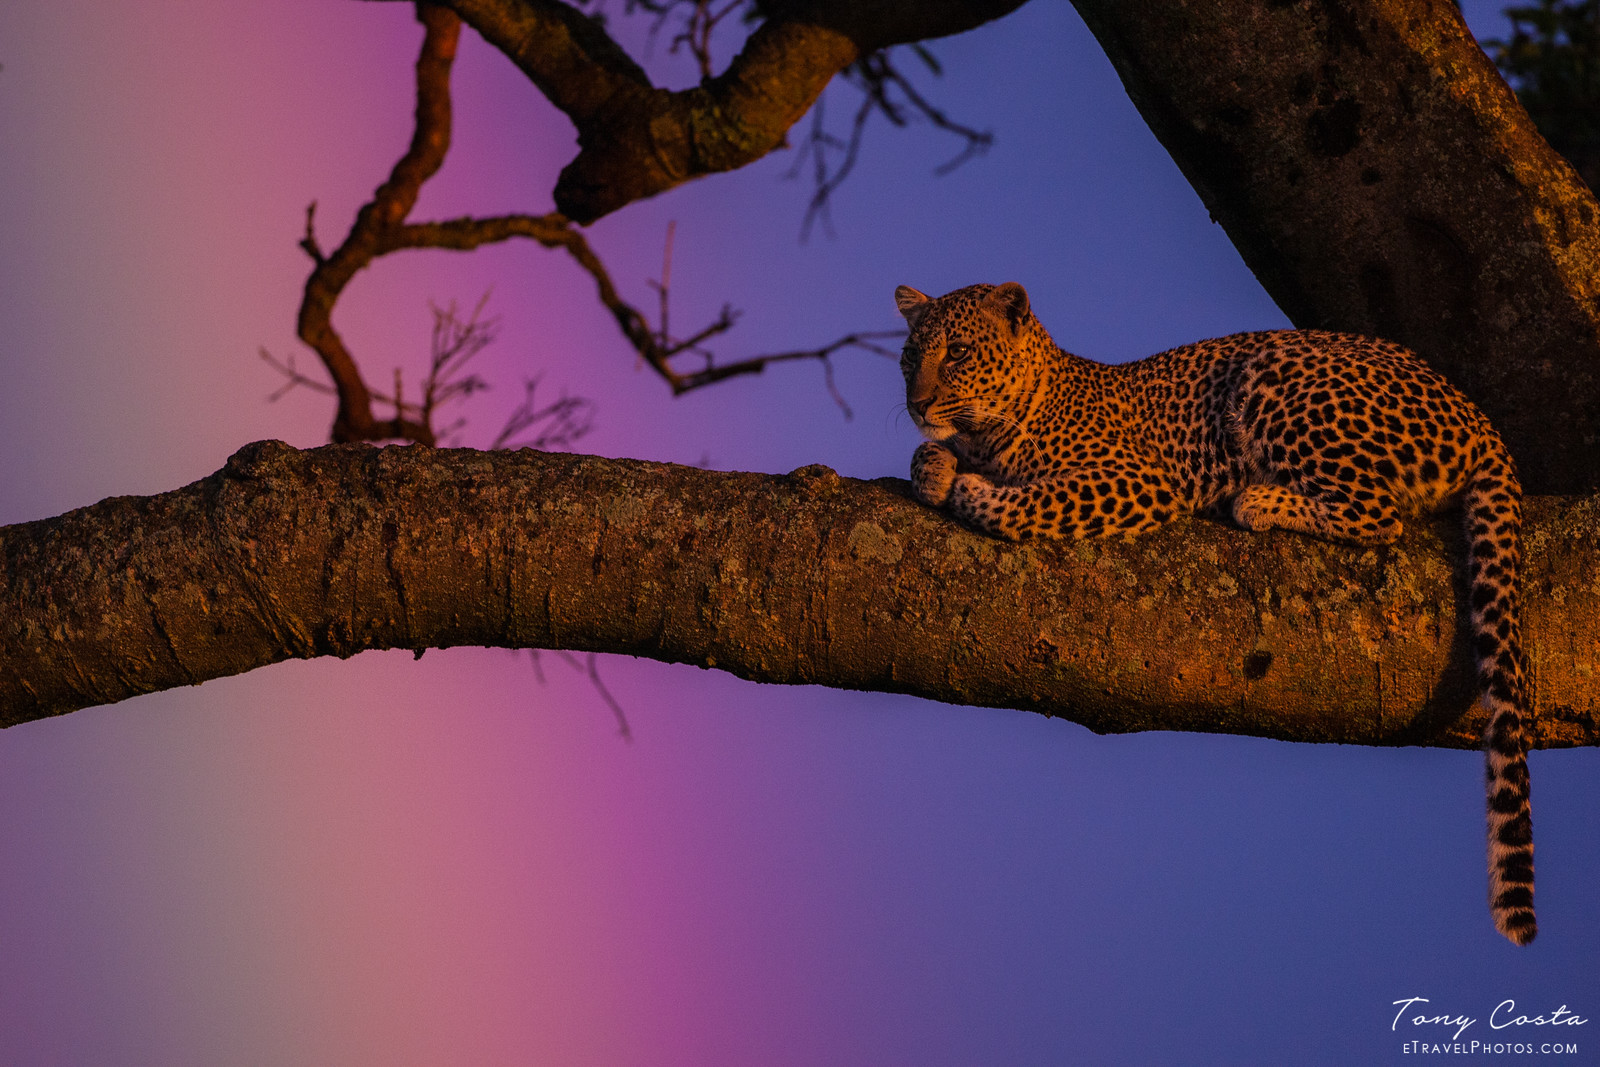 Leopard in a tree with a rainbow